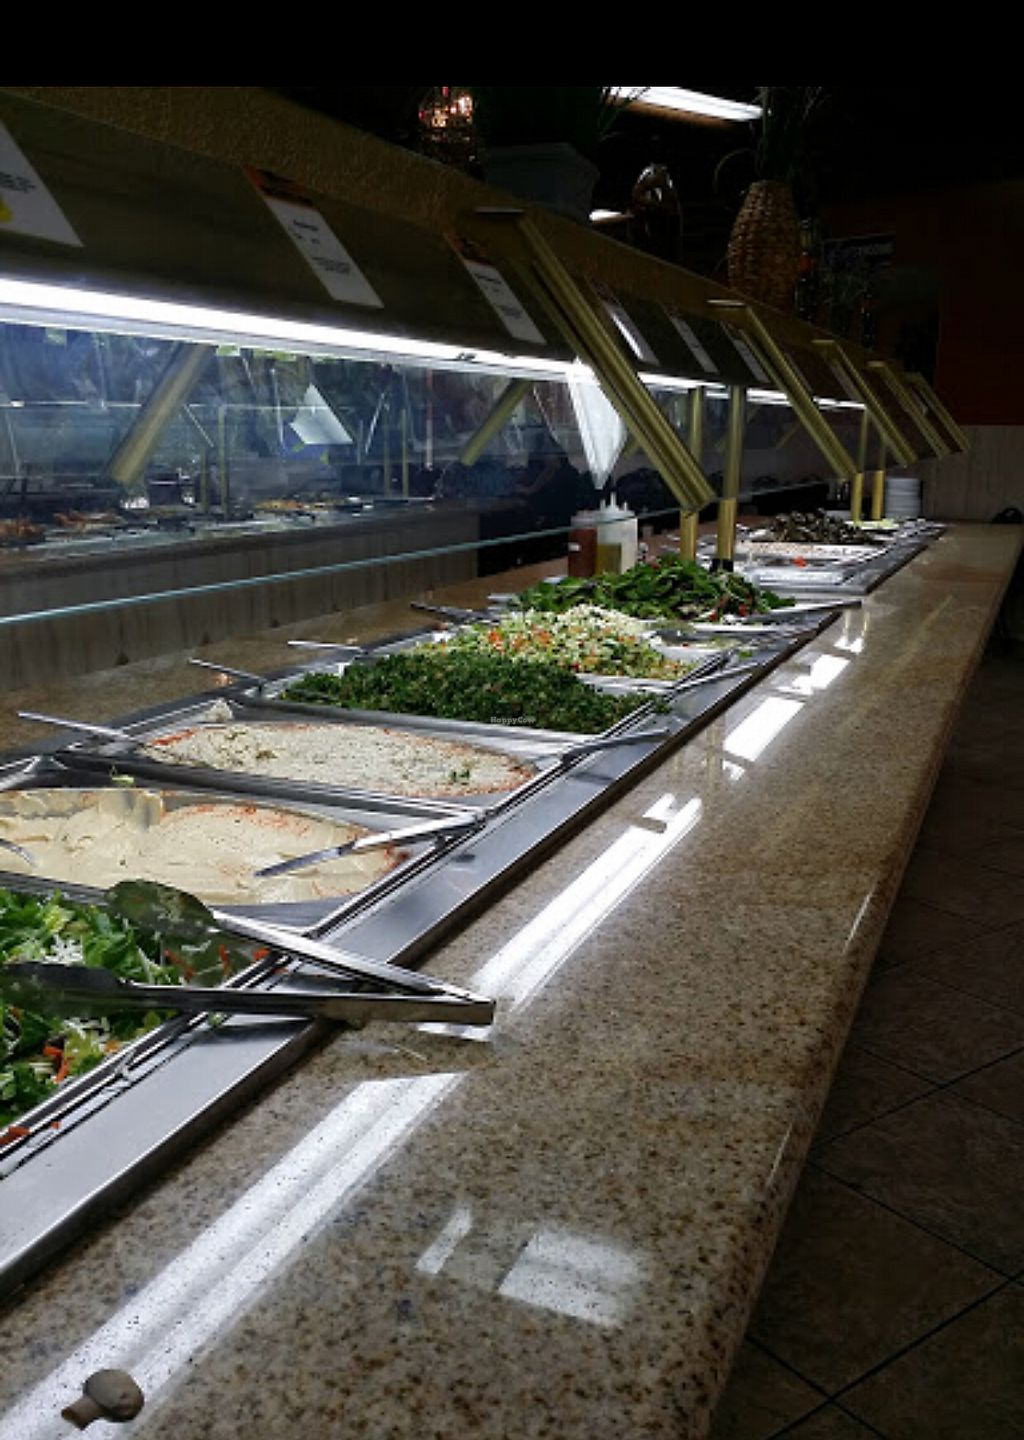 """Photo of Dimassi's Mediterranean Buffet  by <a href=""""/members/profile/ashlinmichelle7"""">ashlinmichelle7</a> <br/>Buffet line  <br/> April 15, 2018  - <a href='/contact/abuse/image/30476/385973'>Report</a>"""